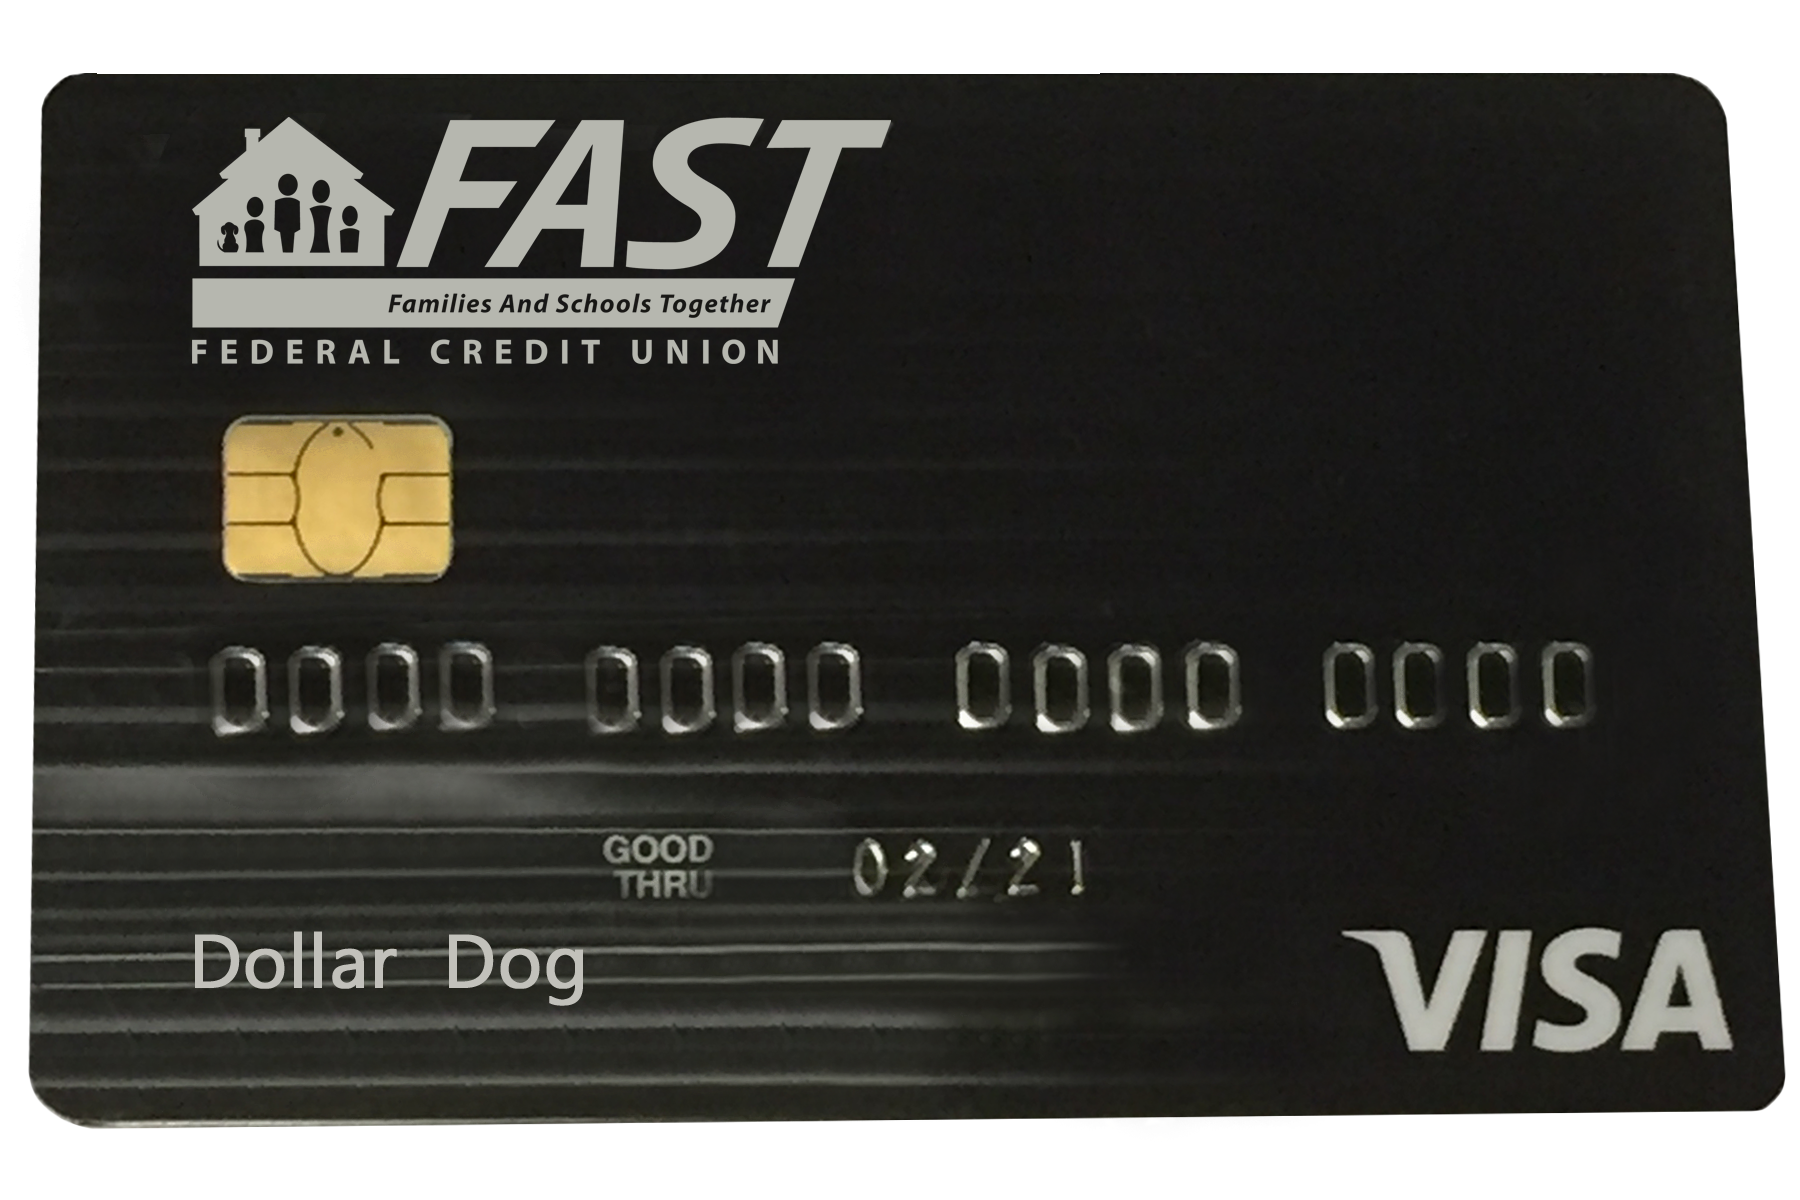 Fast Visa Chip Credit Card Is Now Available The New Chip Card Makes Each  Transaction